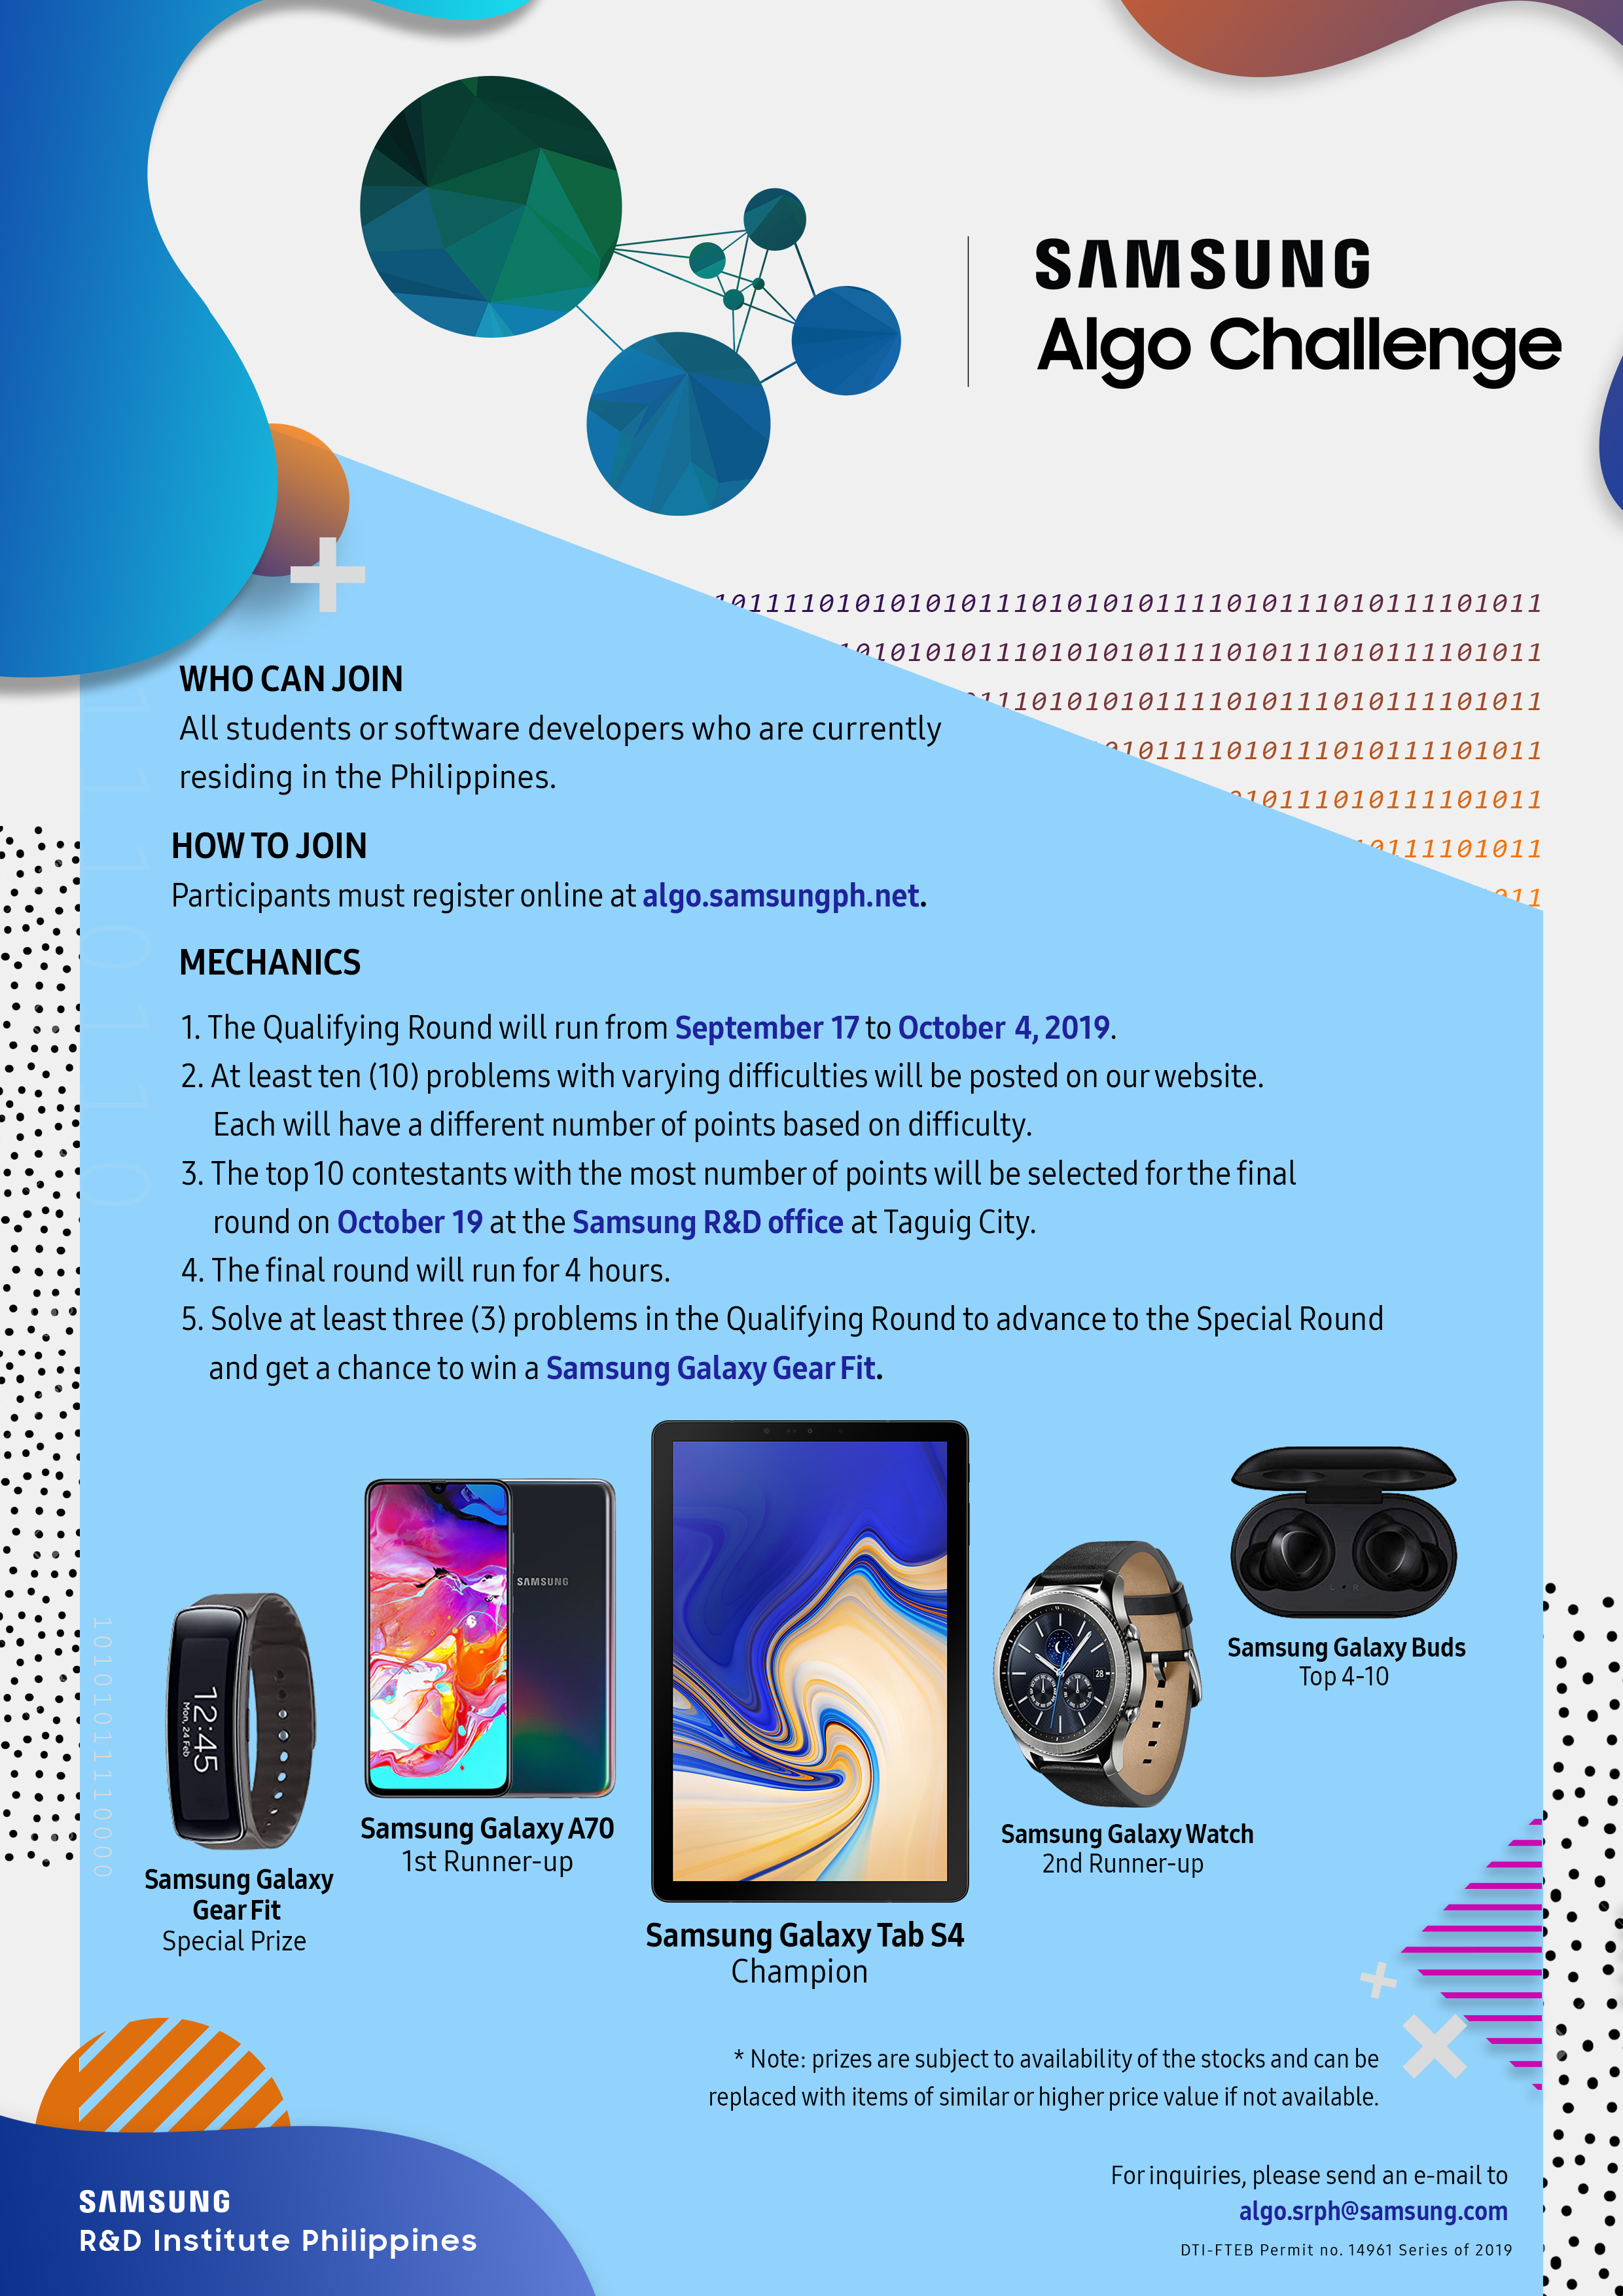 SAMSUNG Algo Chanllenge. WHO CAN JOIN All students or software developers who are currently residing in the Philippines. HOW TO JOIN Participants must register online at algo.samsungph.net. MECHANICS 1. The Qualifying Round will run from September 17 to October4,2019. 2. At least ten (10) problems with varying difficulties will be posted on ourwebsite. Each will have a different numberof points based on difficulty. 3. The top10 contestants with the most number of points will be selected for the final round on October 19 at the Samsung R&D office at Taguig City. 4. The final round will run for 4 hours. 5. Solve at least three (3) problems in the Qualifying Round to advance to the Special Round and get a chance to win a Samsung Galaxy Gear Fit. Samsung Galaxy Gear Fit : Special Prize Samsung Galaxy A70 : 1st Runner-up Samsung Galaxy Tab S4 : Champion Samsung Galaxy Watch : 2nd Runner-up Samsung Galaxy Buds : Top 4-10 + Note: prizes are subject to availability ofthe stocks and can be replaced with items of similar or higher price value if not available. Forinquiries, please send an e-mail to algo.srph@samsung.com DTl-FTEB Permit no. 14961 Series of 2019 SAMSUNG R&D Institute Philippines